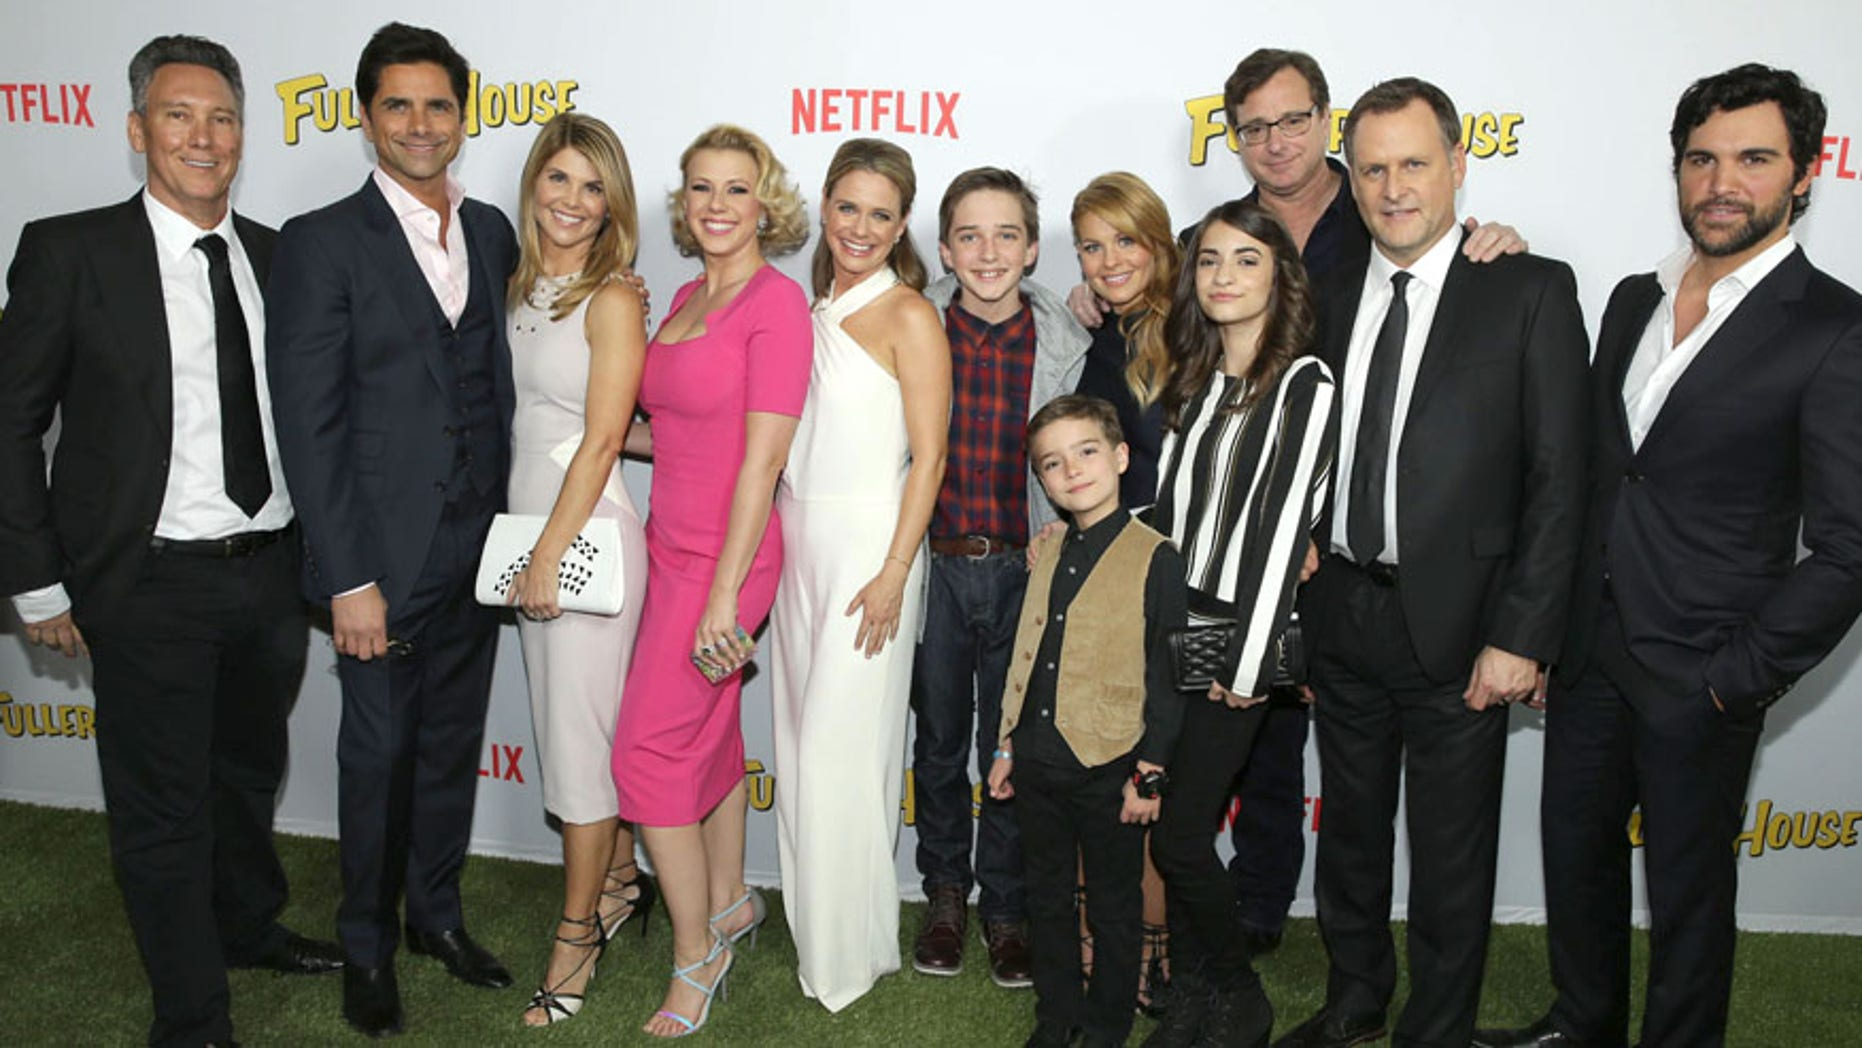 """Exec. Producer Jeff Franklin, John Stamos, Lori Loughlin, Jodie Sweetin, Andrea Barber, Michael Campion, Candace Cameron Bure, Elias Harger, Soni Bringas, Bob Saget, Dave Coulier and Juan Pablo Di Pace seen at Netflix Premiere of """"Fuller House"""" at The Grove on February 16, 2016, in Los Angeles, CA. (Photo by Eric Charbonneau/Invision for Netflix/AP Images)"""